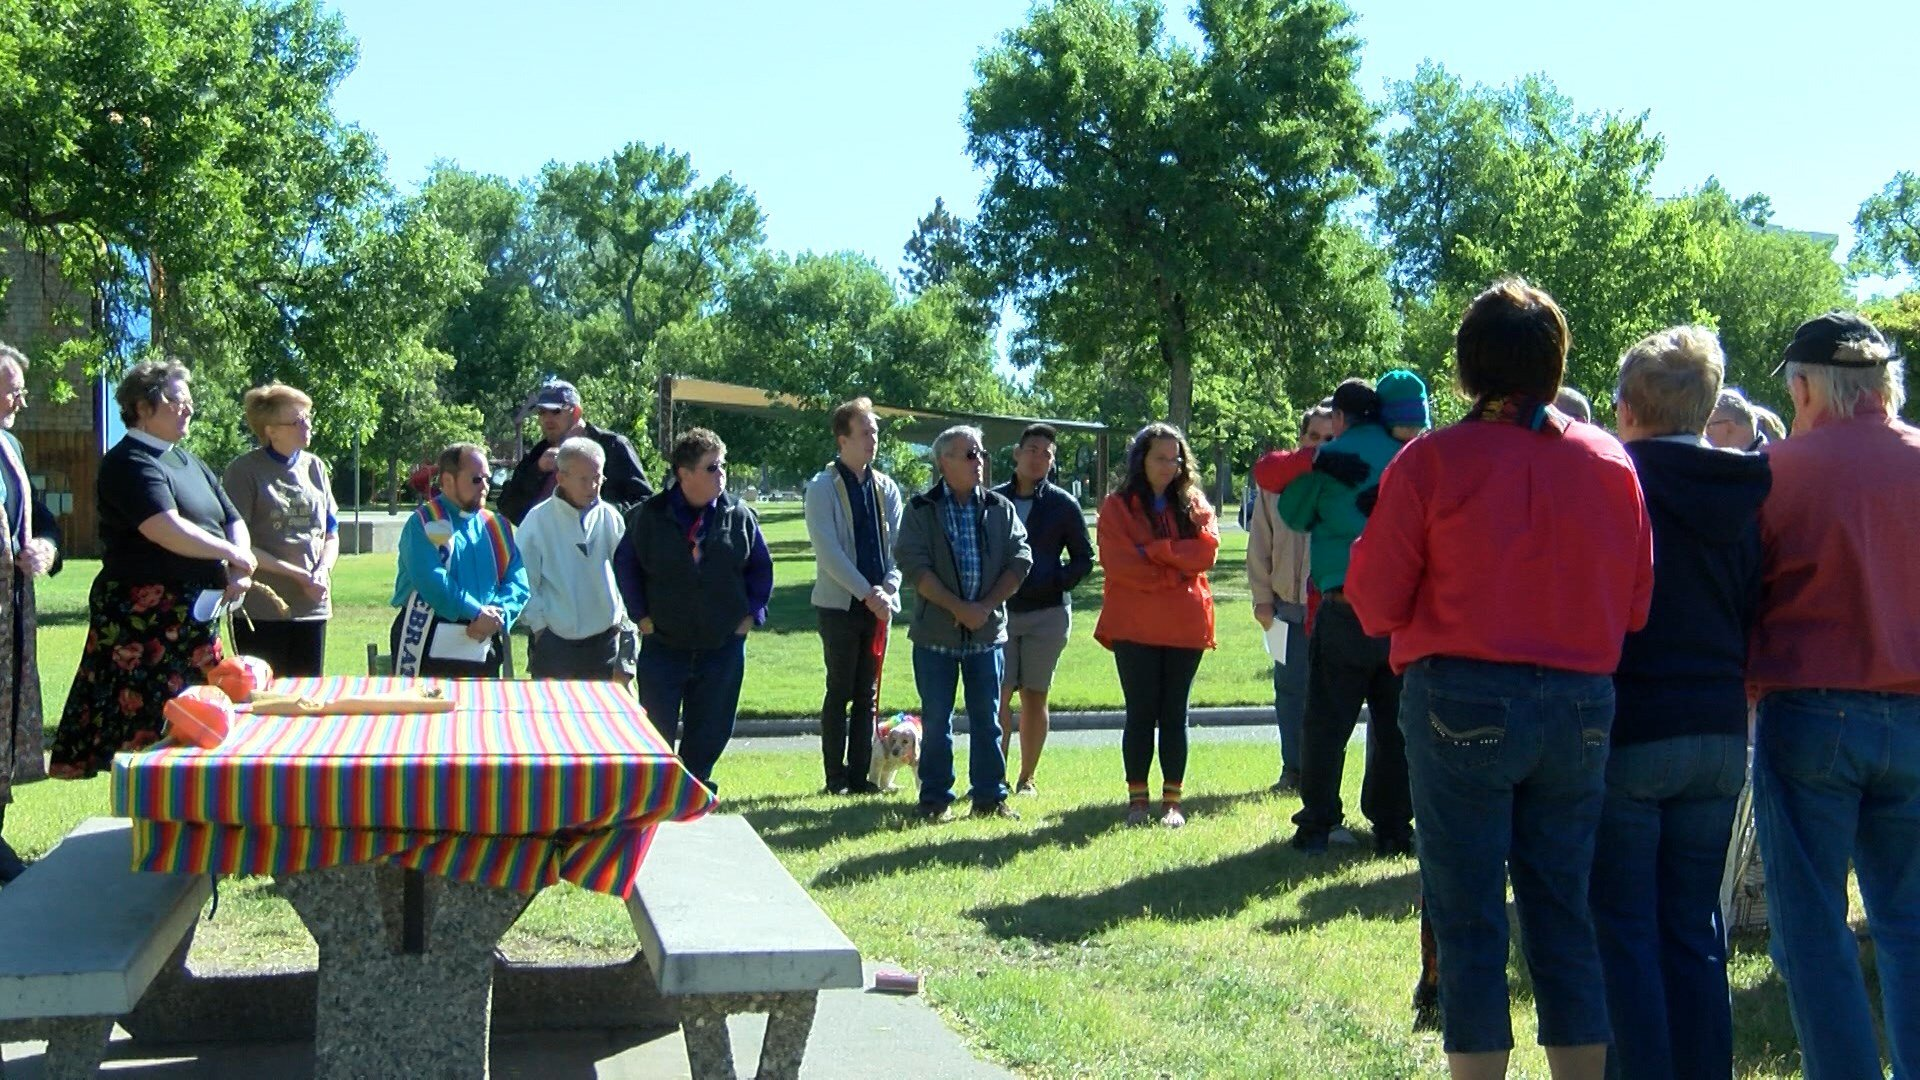 Several members of the group shared personal stories and items that symbolized their unity with the LGBTQIA Community.